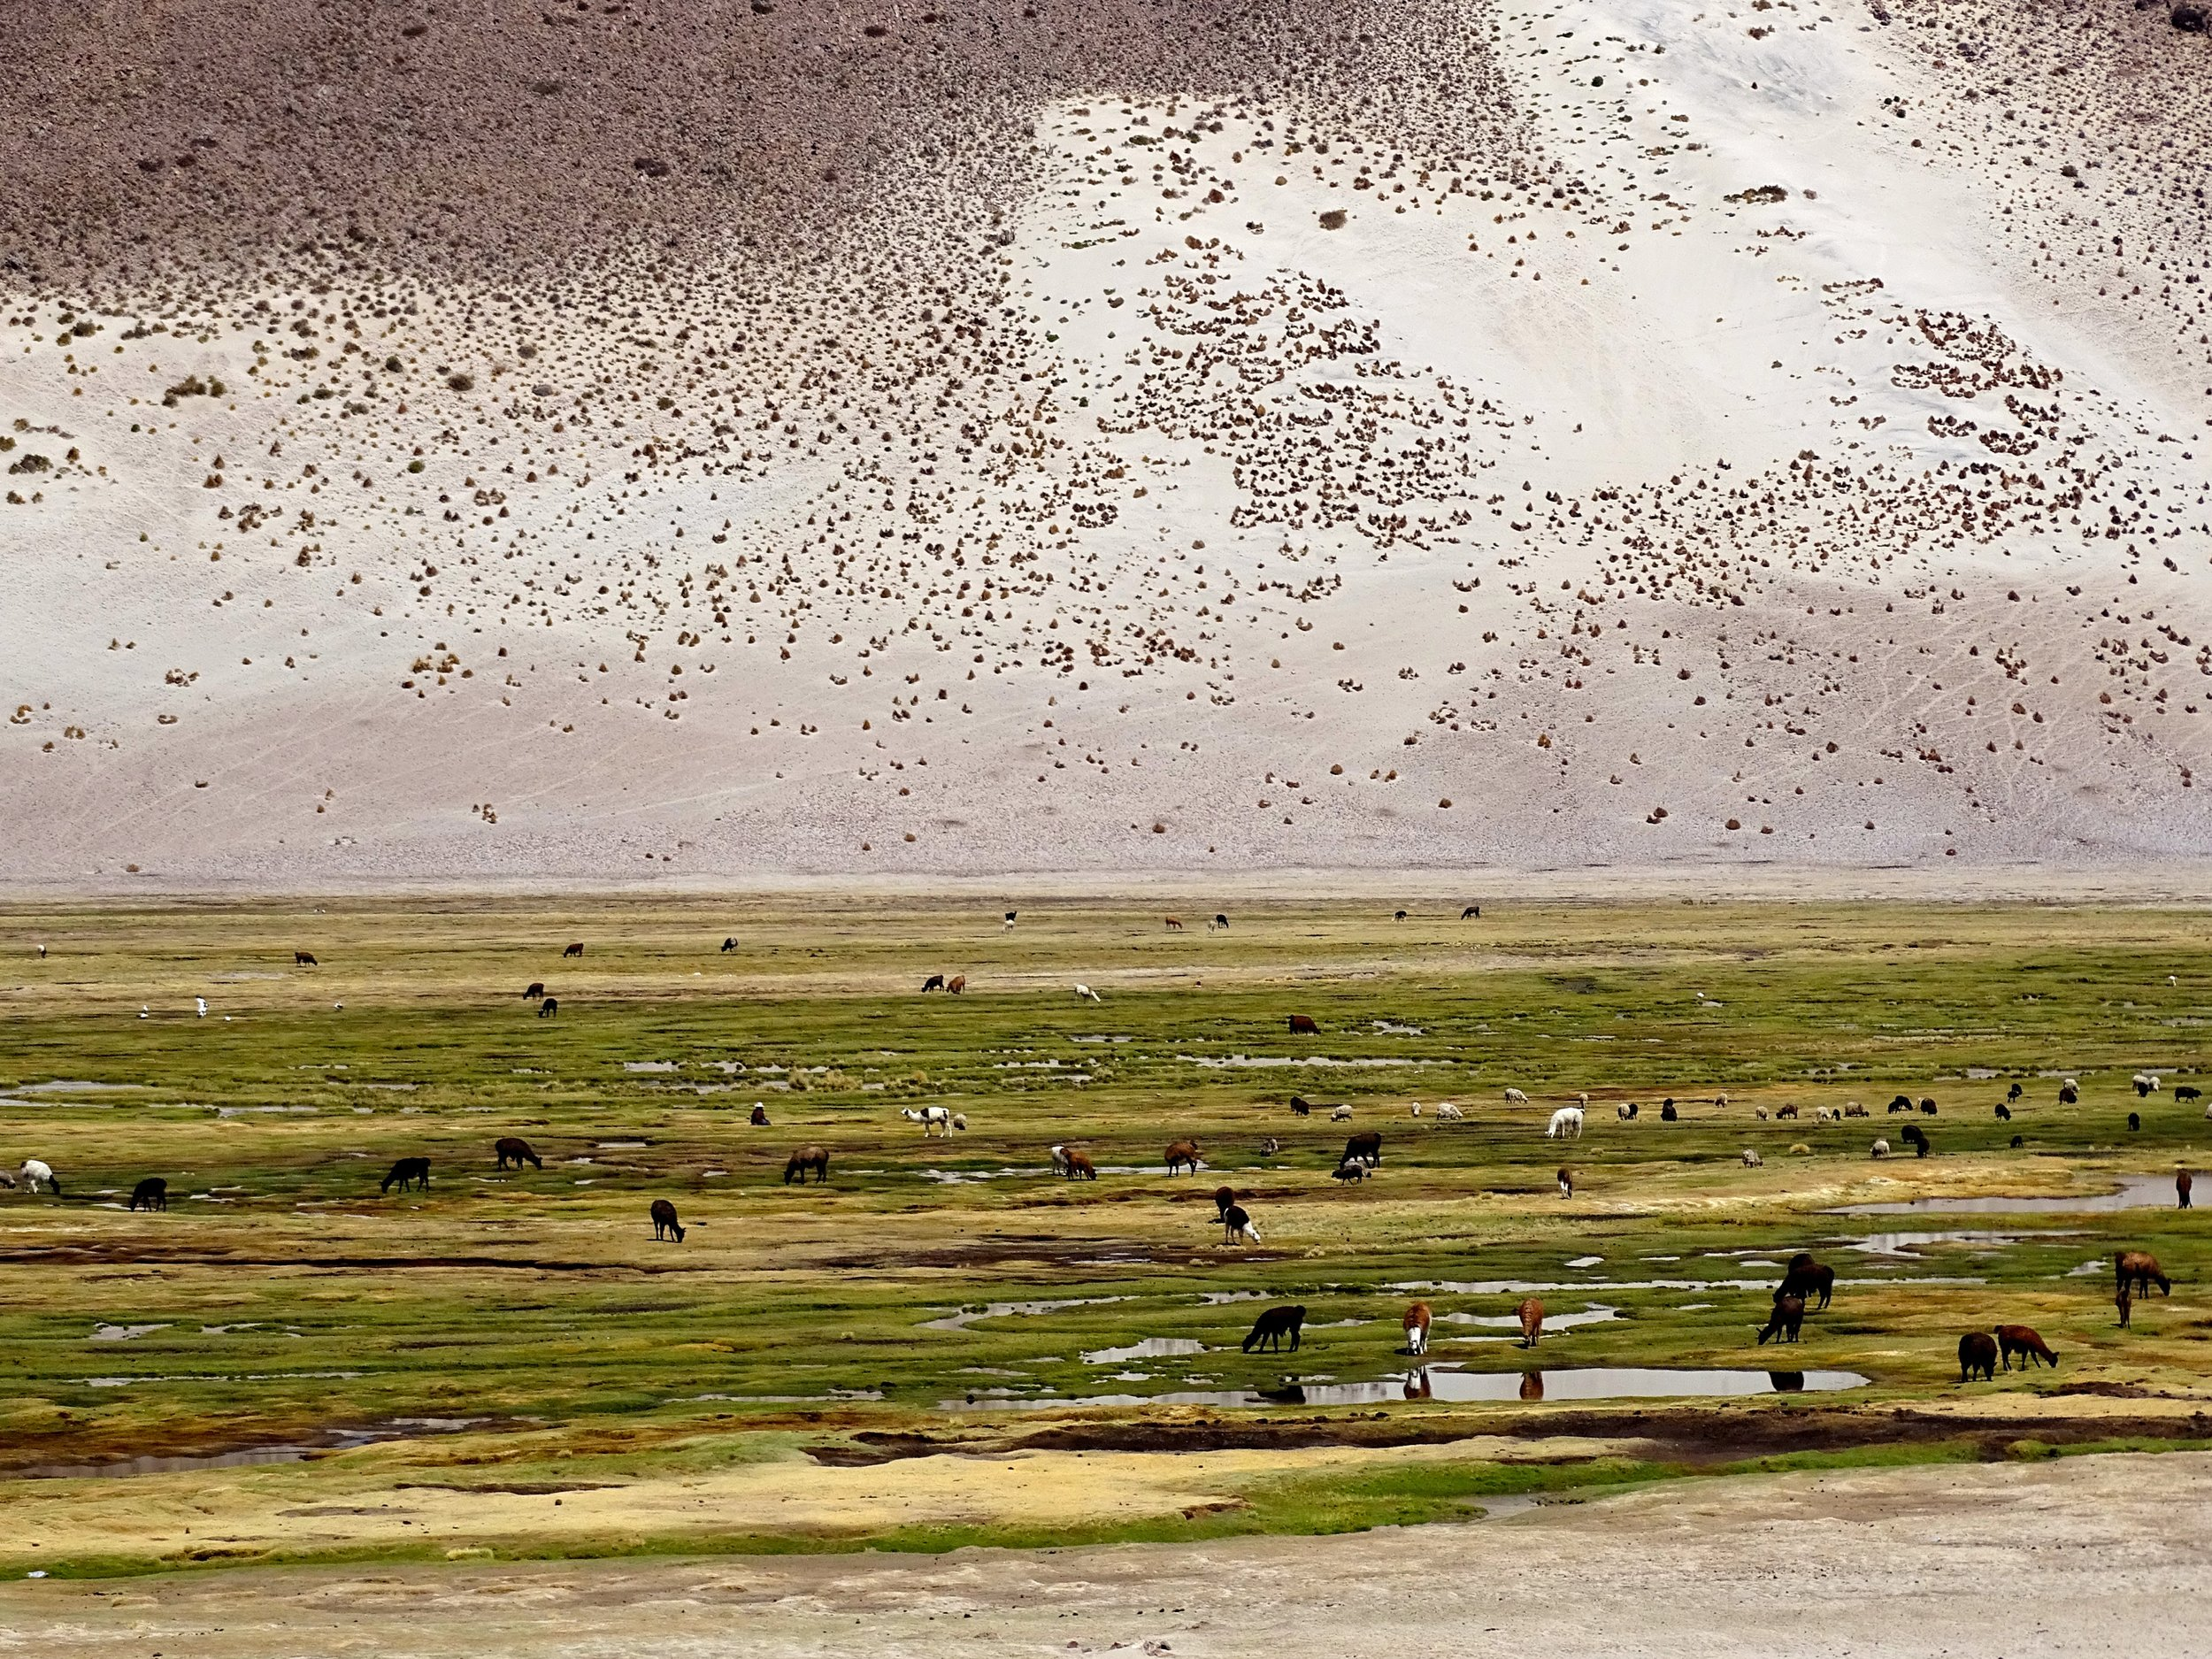 Low marshy areas often held immense herds of llamas.